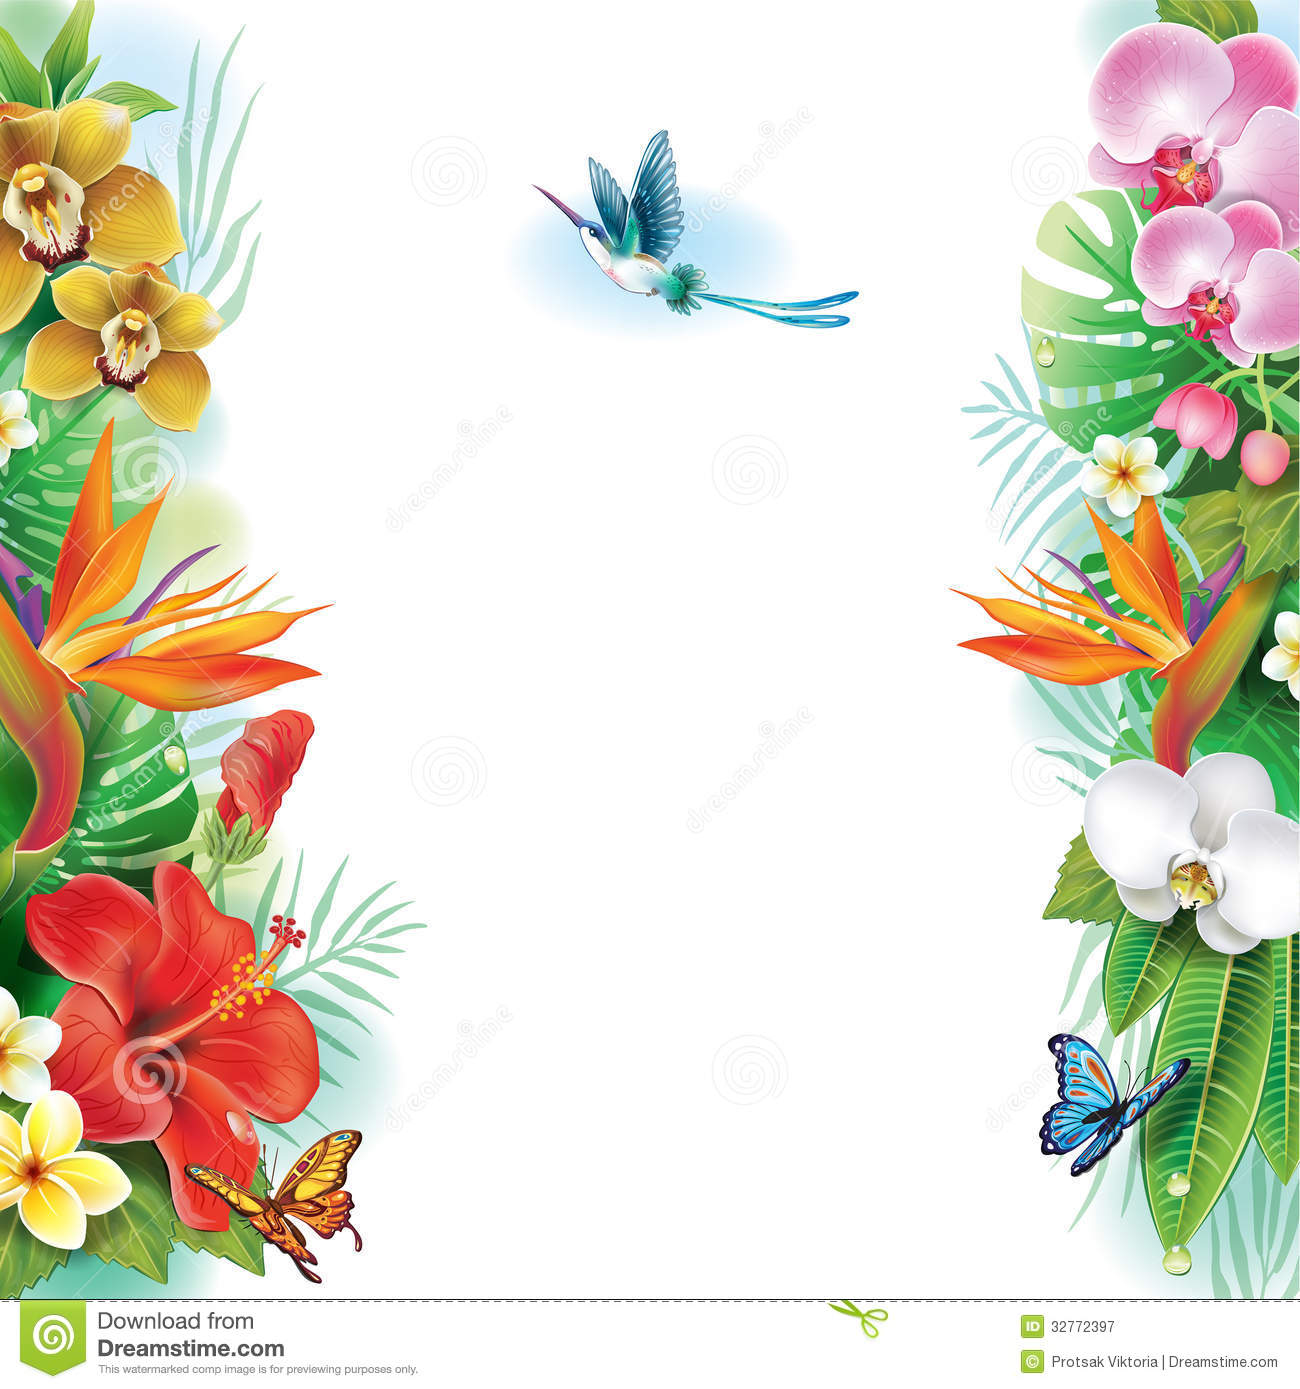 Tropical flowers pictures free svg free download Border From Tropical Flowers And Leaves Royalty Free Stock ... svg free download